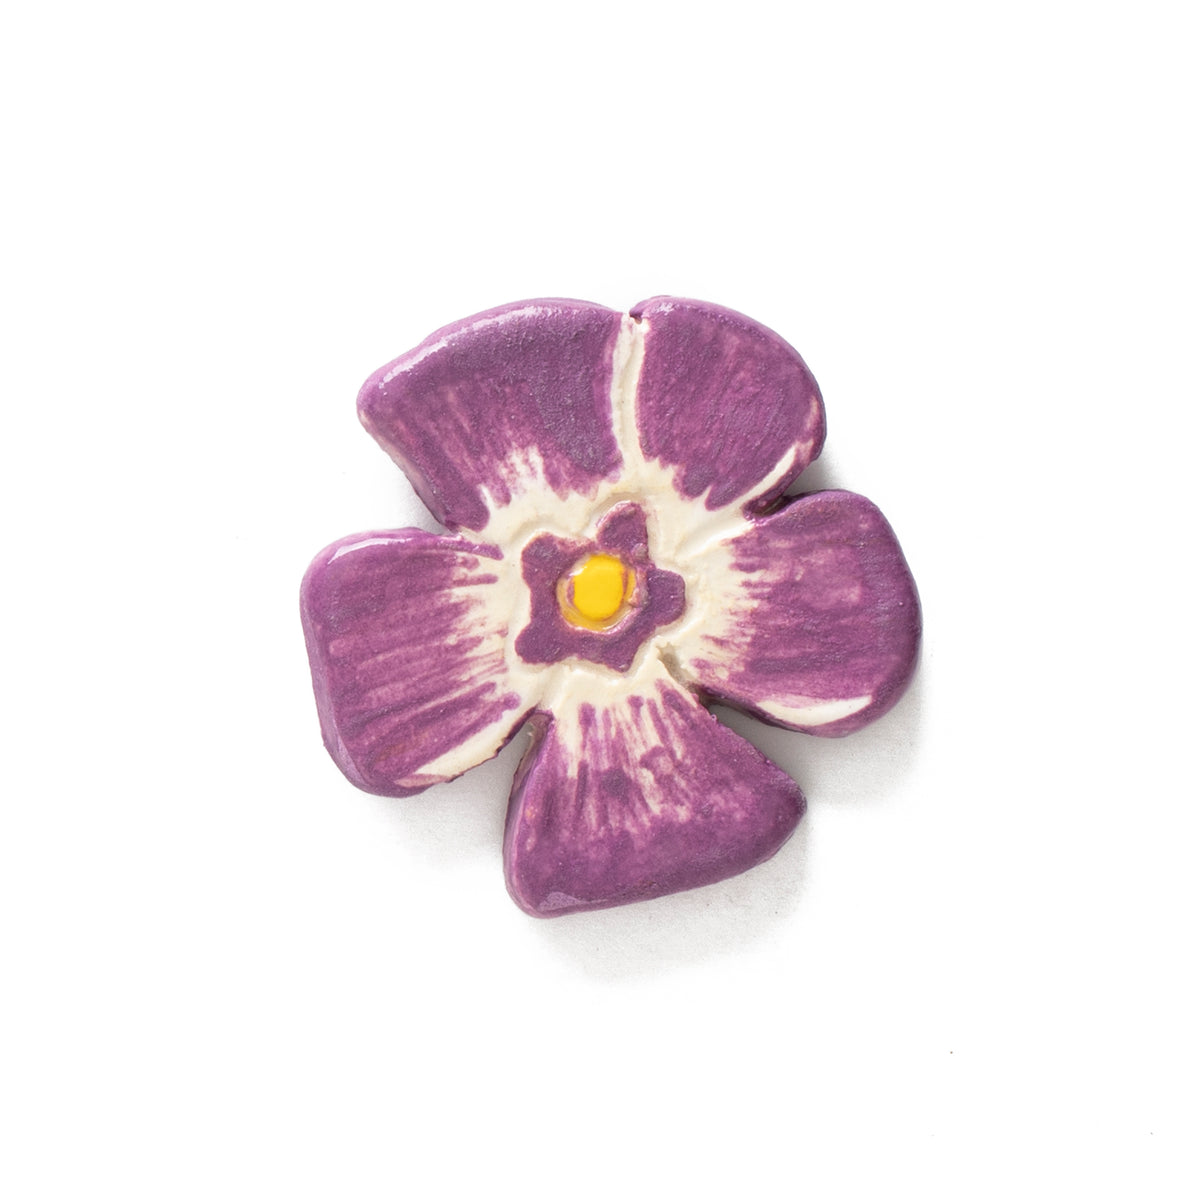 Periwinkle Ceramic Pin | Getty Store